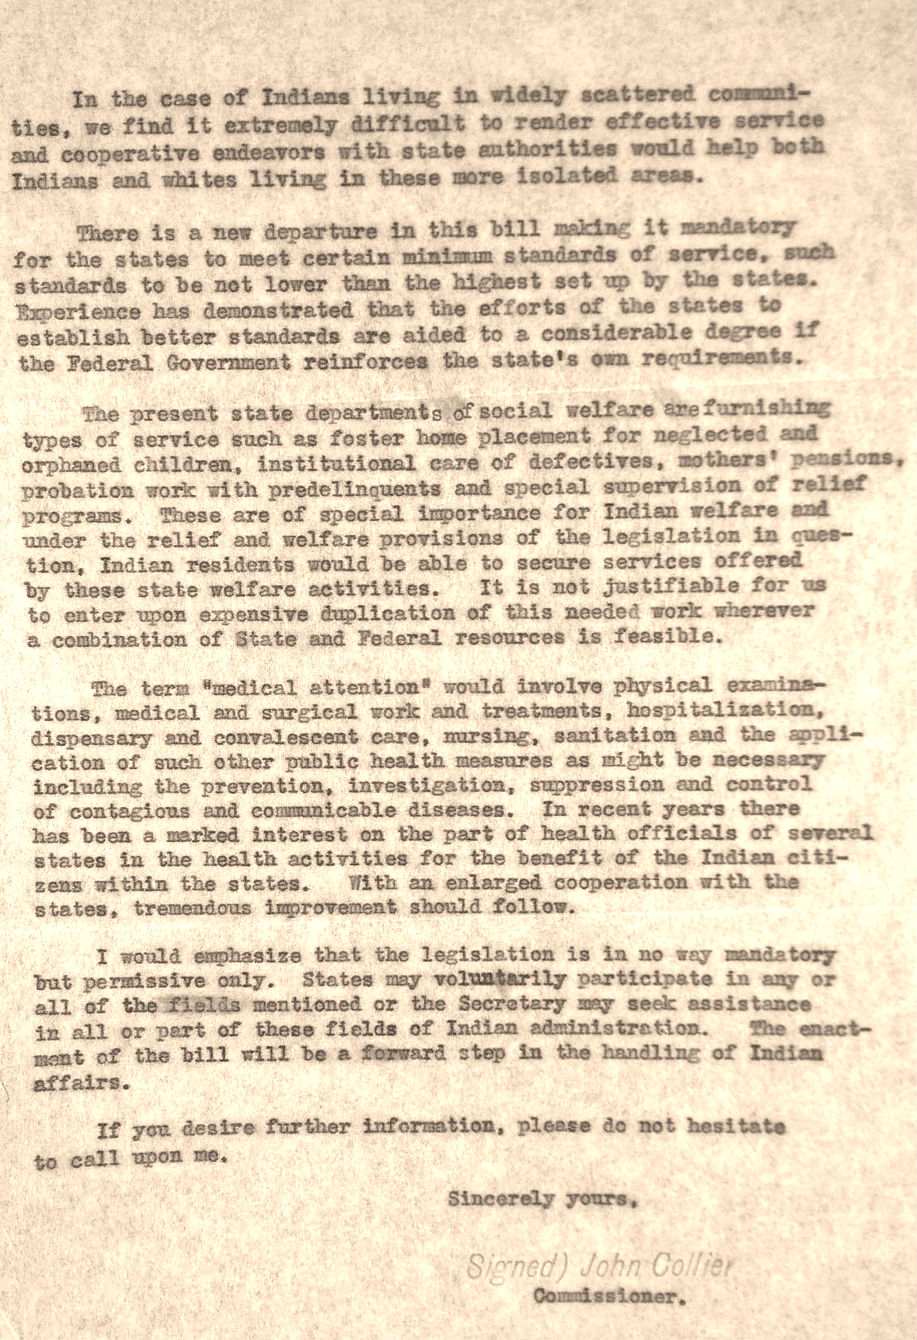 Memo from John Collier to Senator Thomas O'Malley Regarding Justifications for Senate Bill 2571 (what would become the Johnson-O'Malley Act), February 26, 1934. (National Archives Identifier 559808)